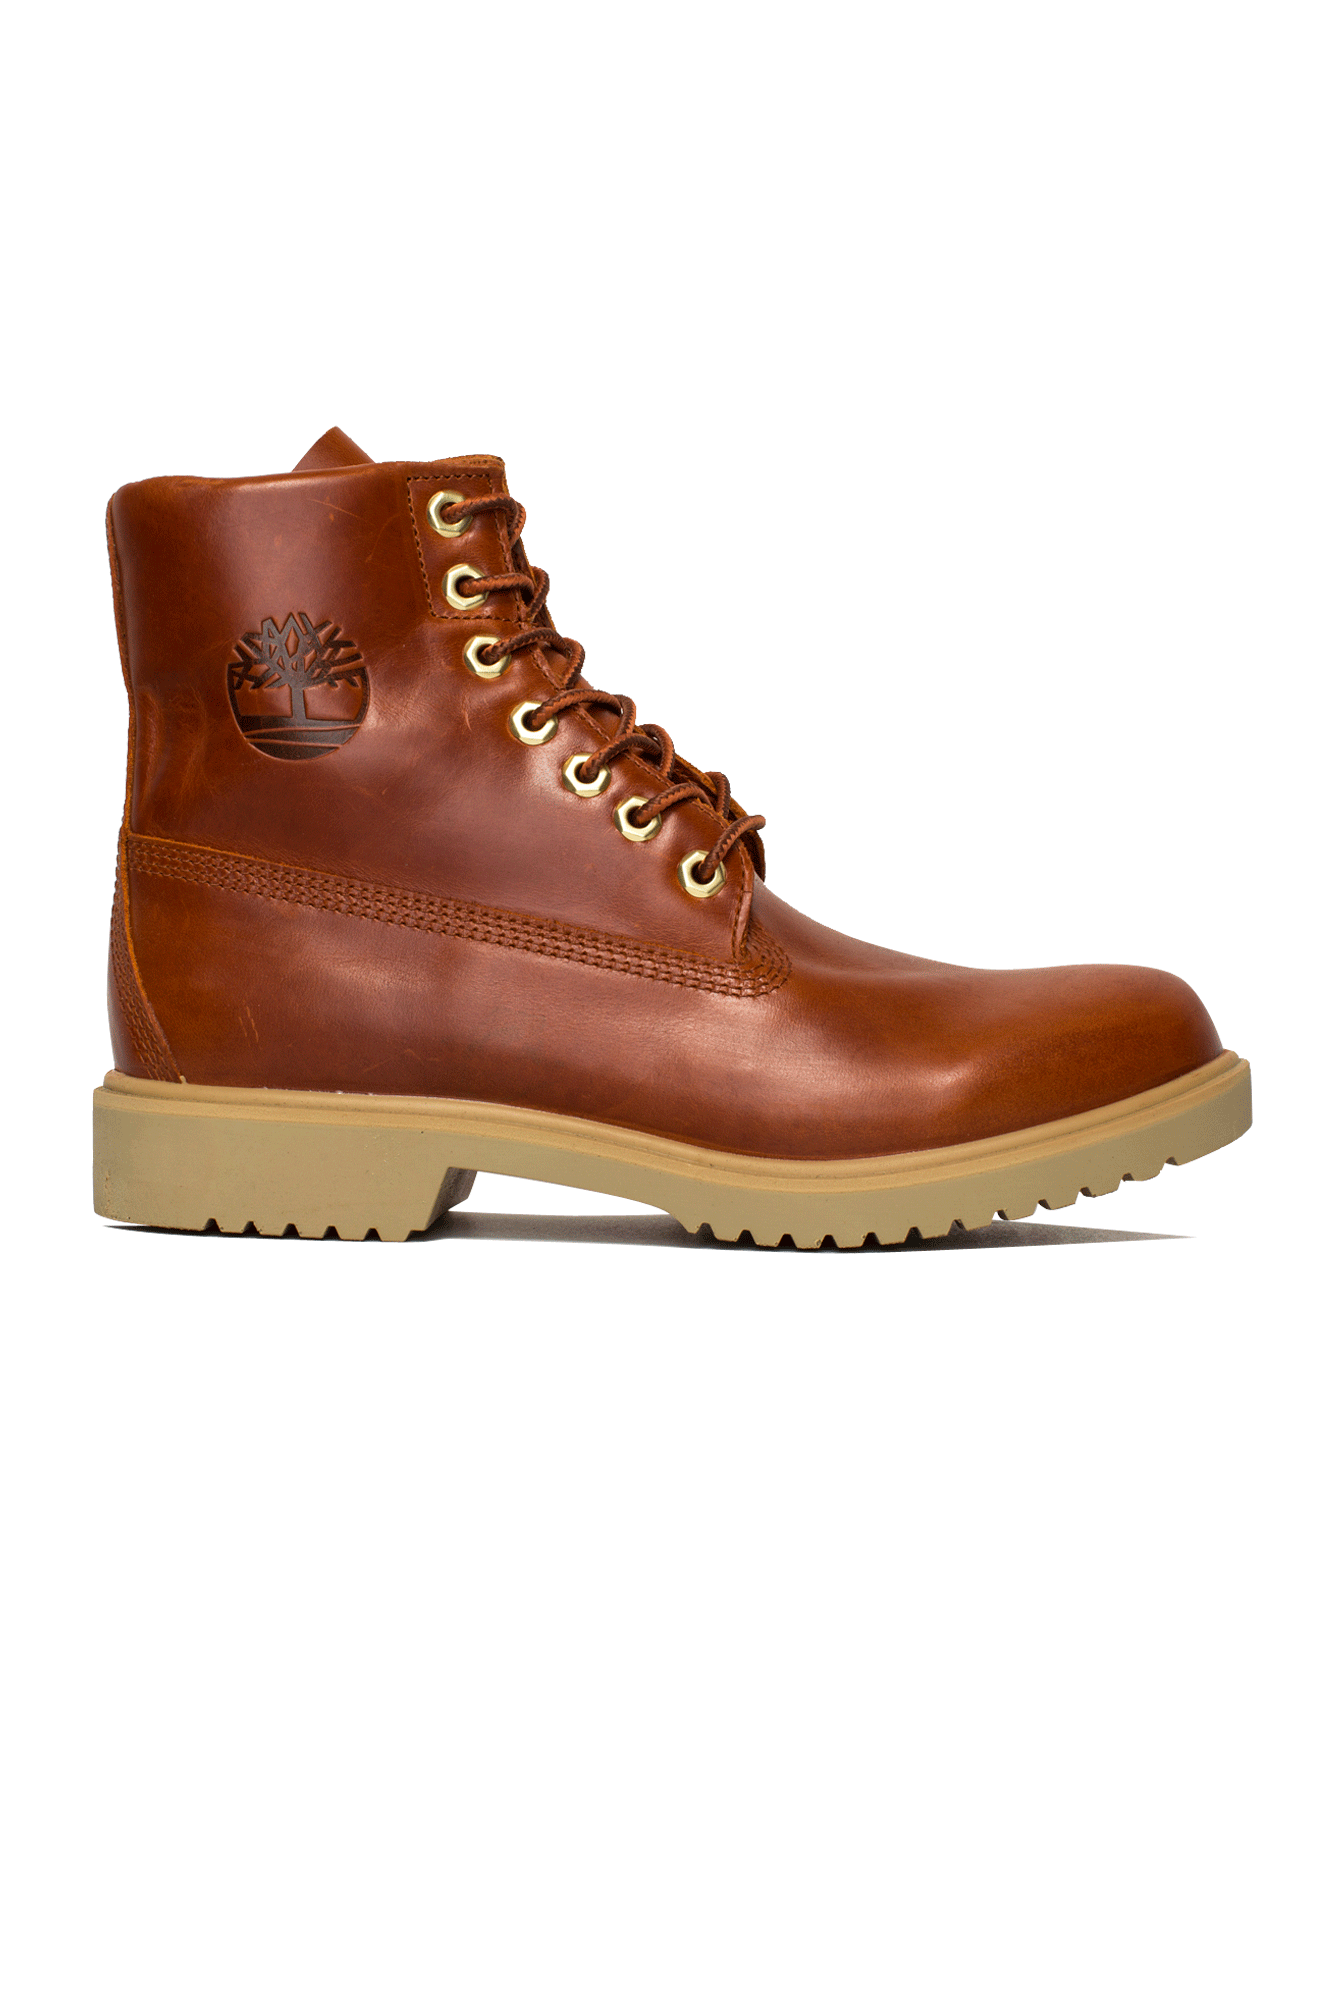 Timberland Scarpe da montagna 1973 Newman Boot Marrone A26WG8141#000#8141#7 - One Block Down